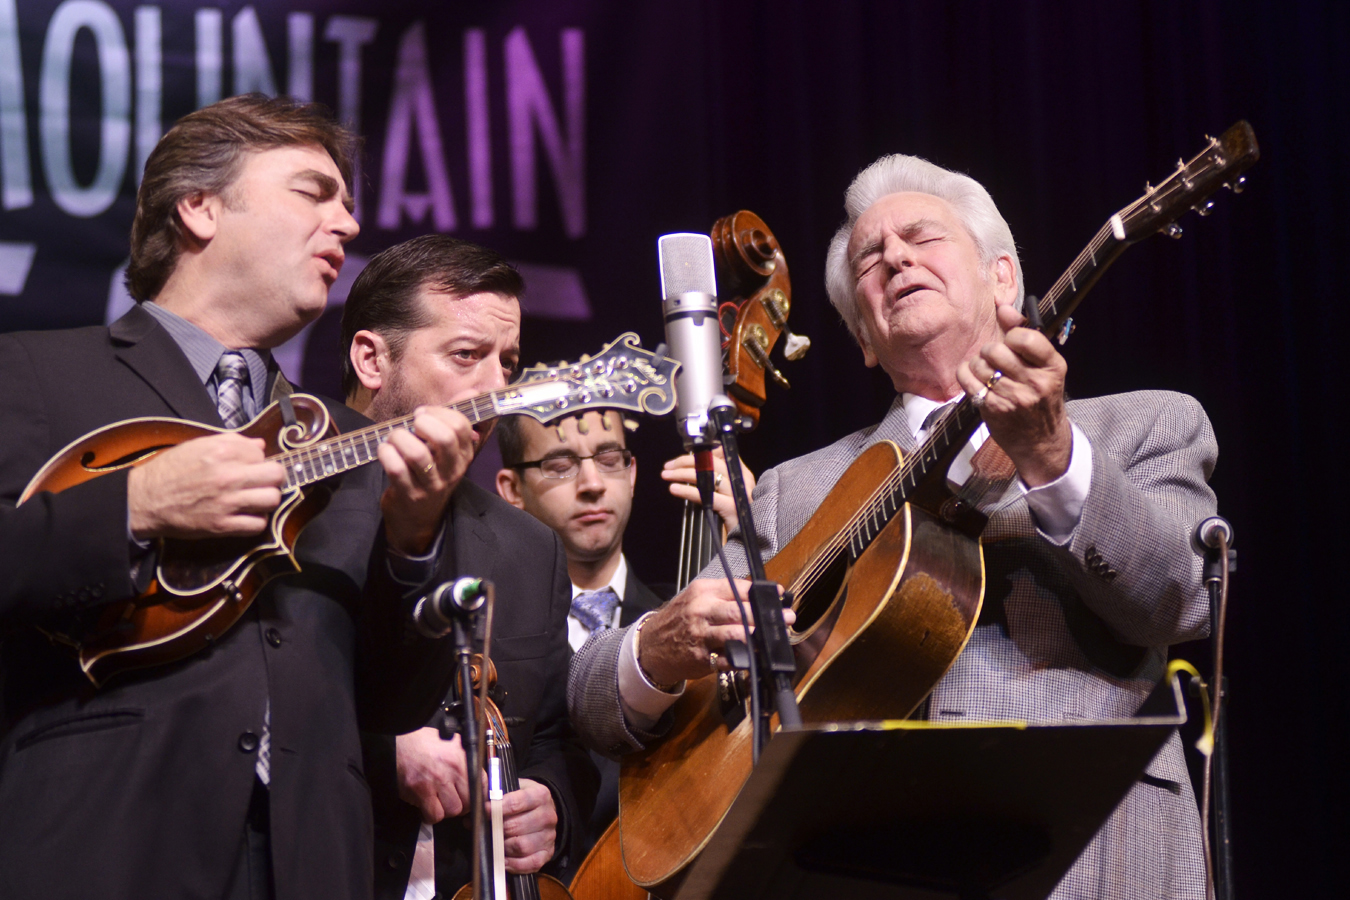 Whether they're acting as a traditional bluegrass group or a jam band, the Del McCoury Band is met with adoration and success.